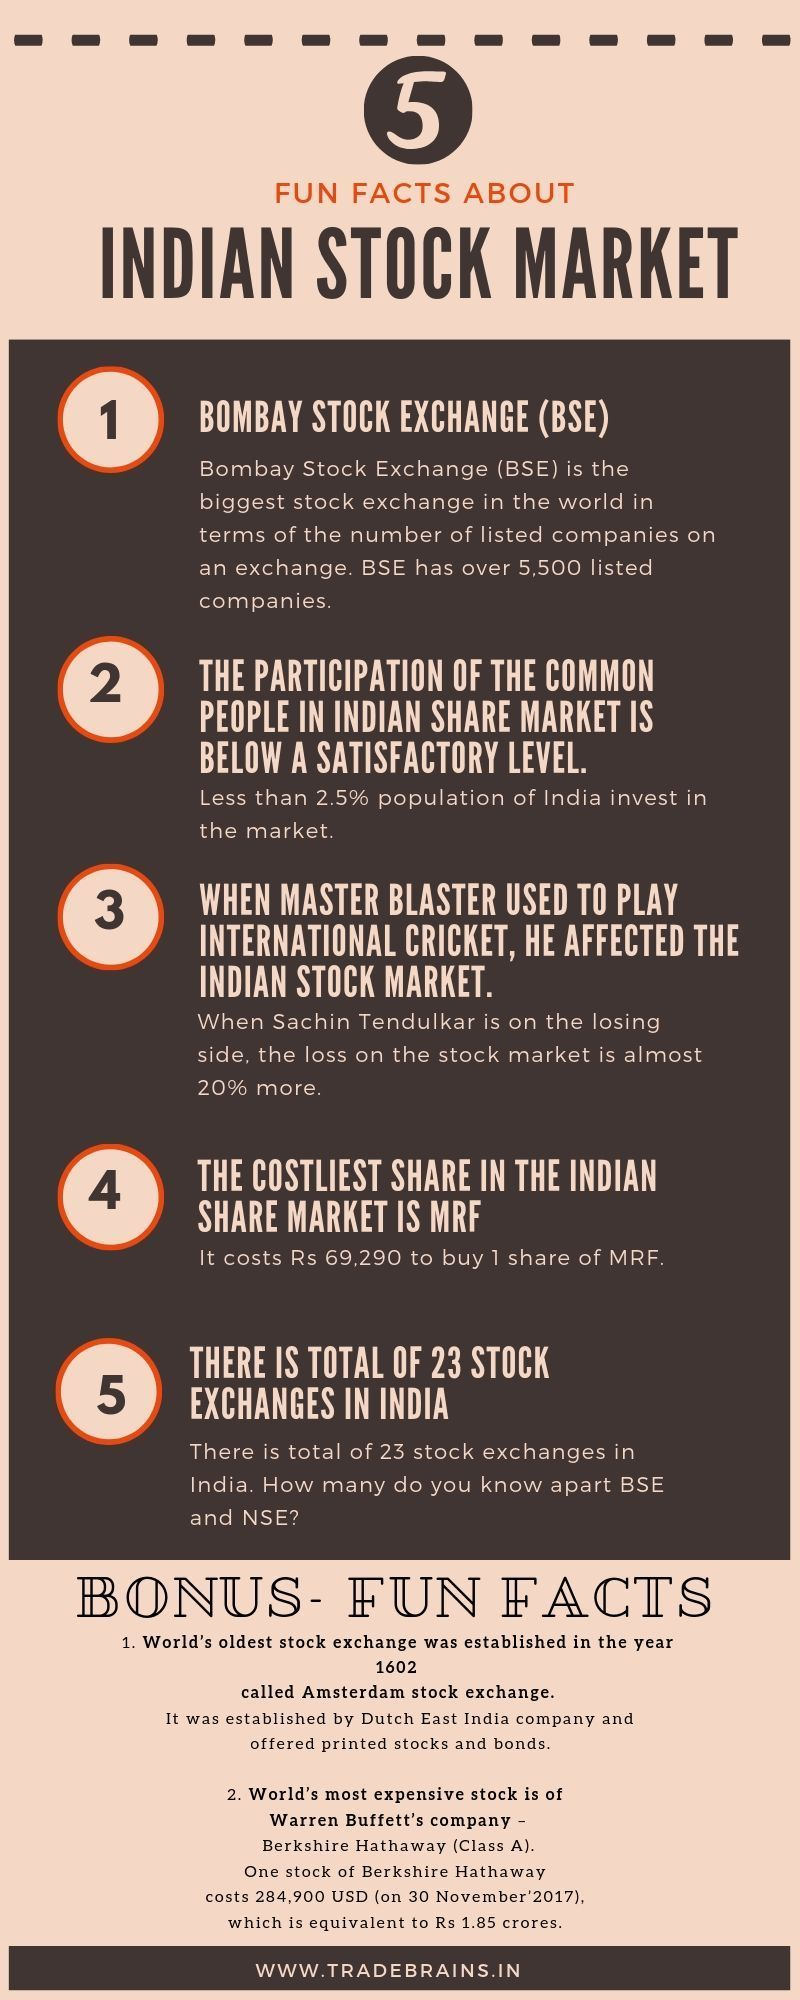 7 Fun facts about Indian stock market 4 is my favourite